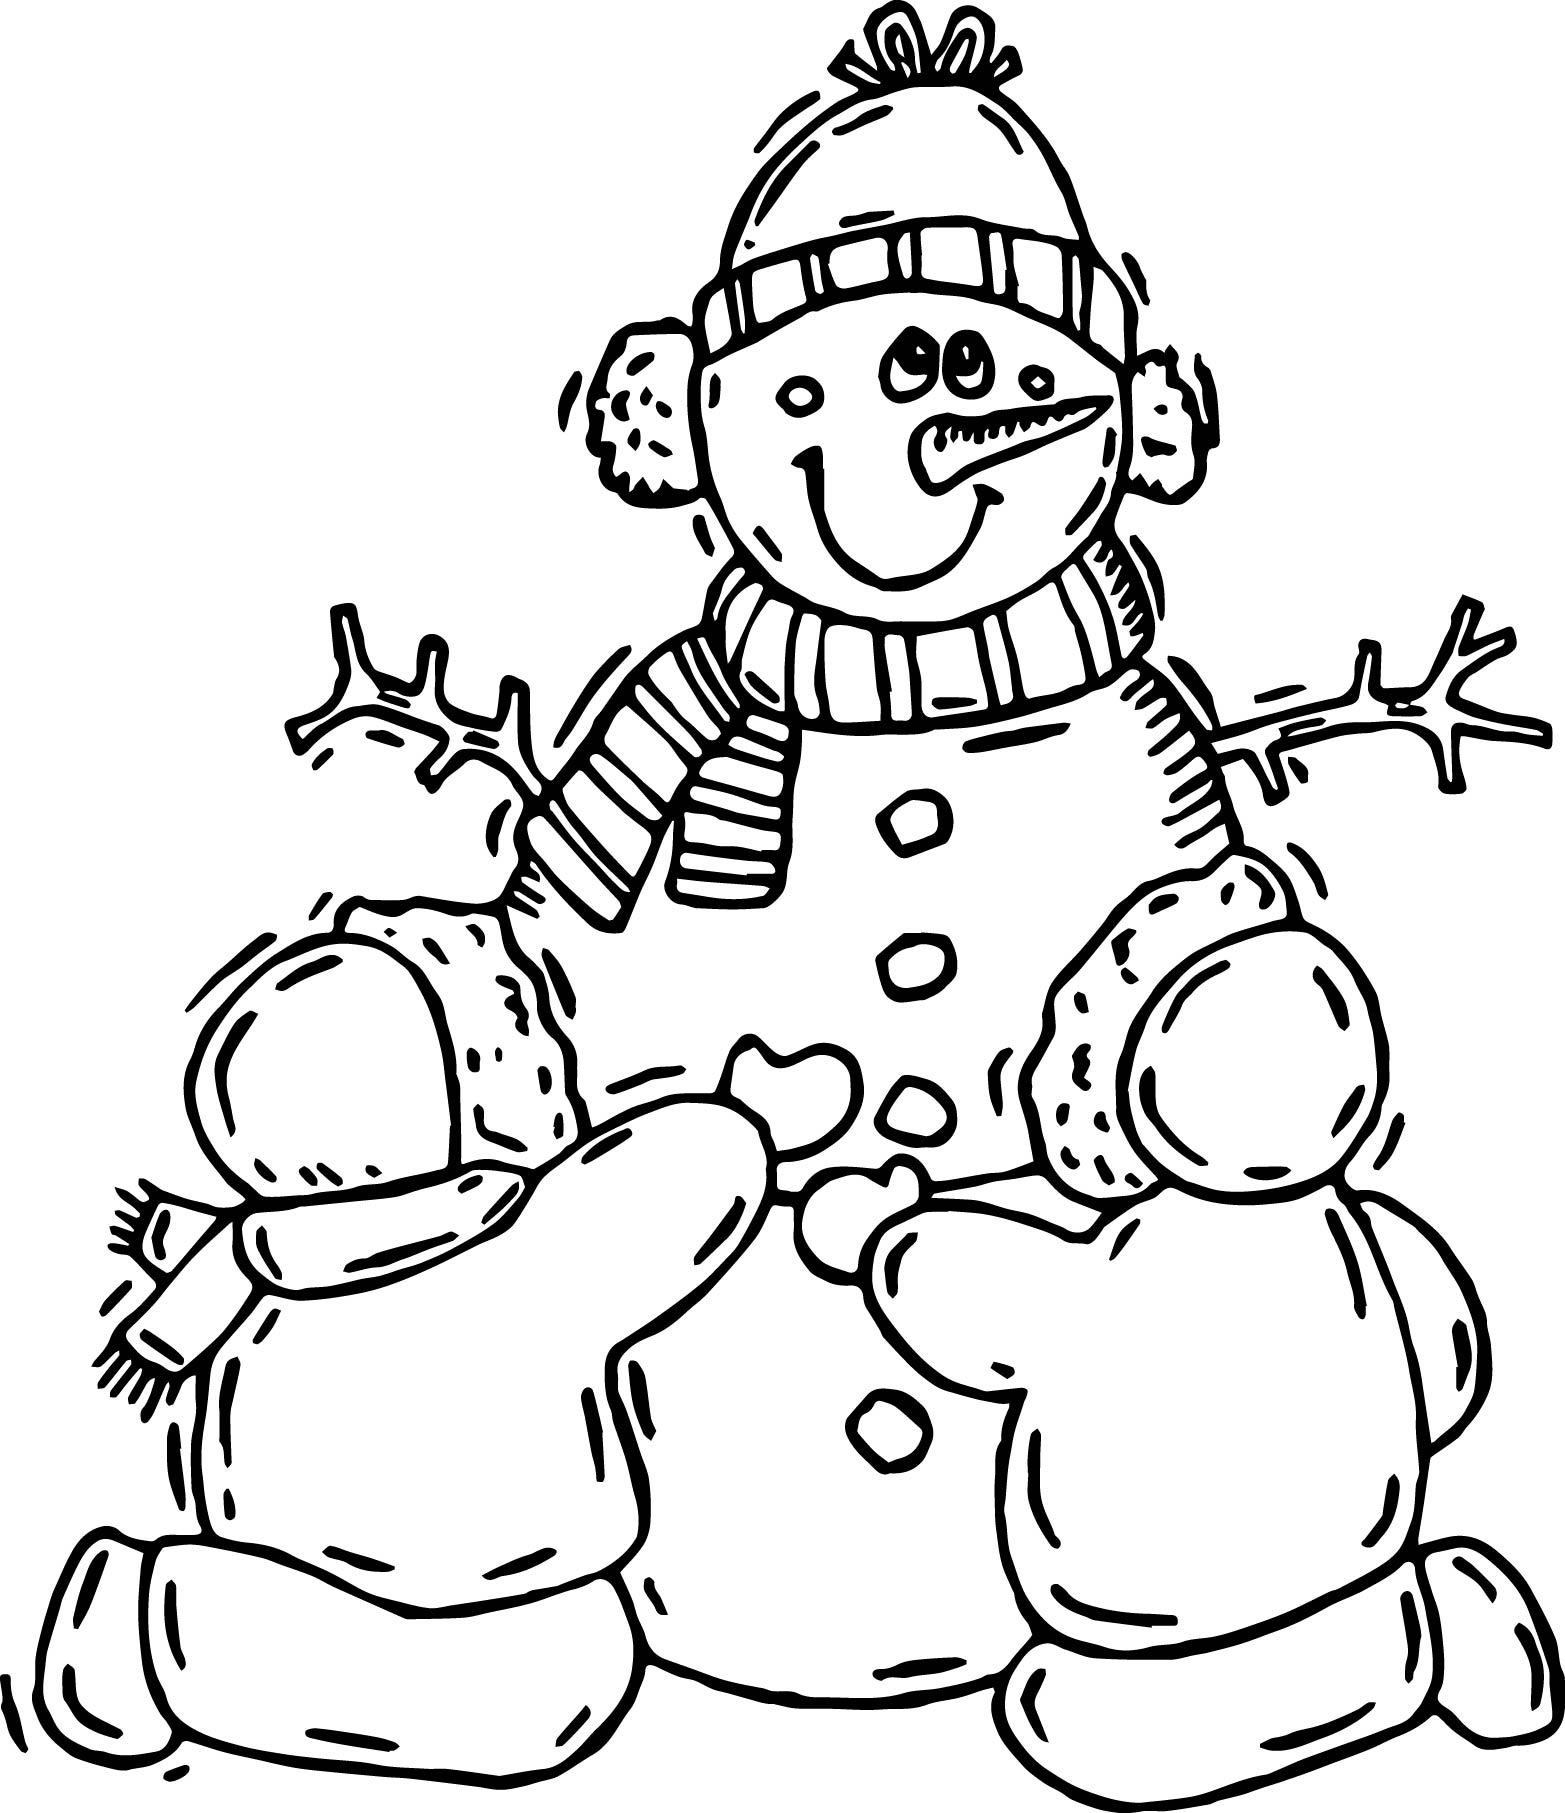 Snowman children winter activity coloring page for Winter coloring pages for preschool